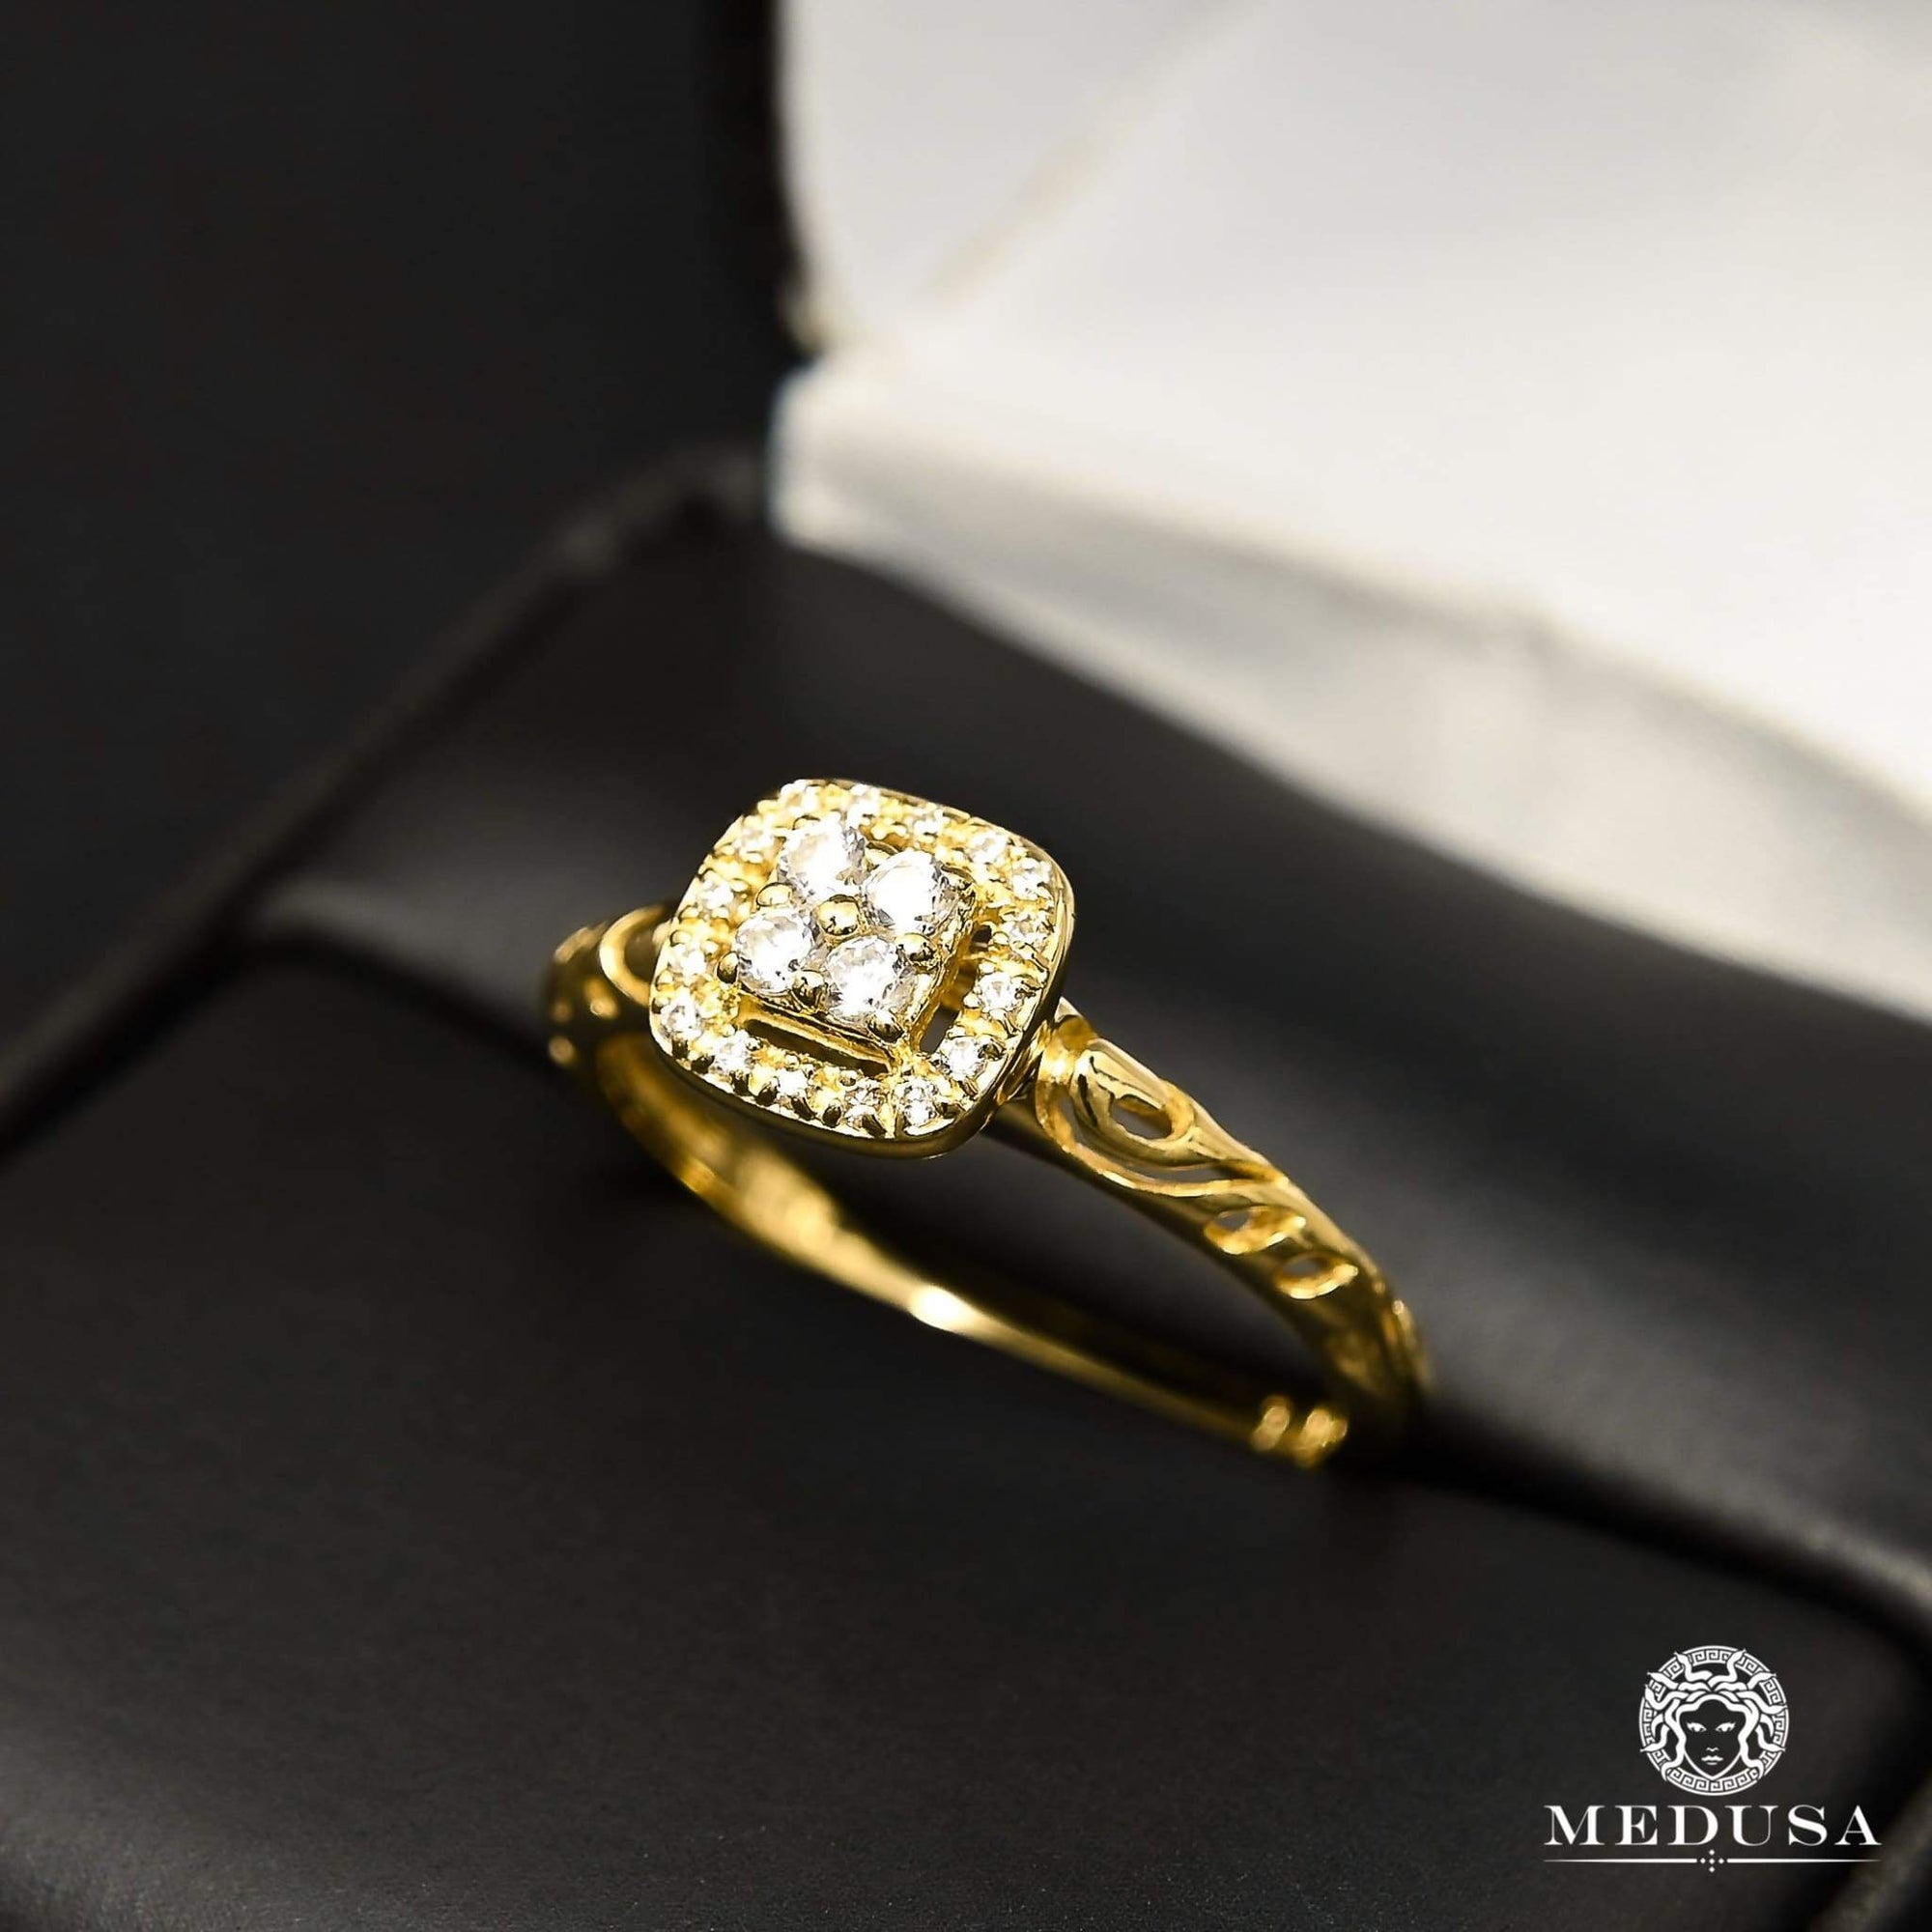 Bague à Diamants en Or 14K | Bague Fiançaille Solitaire F31 - MA0859